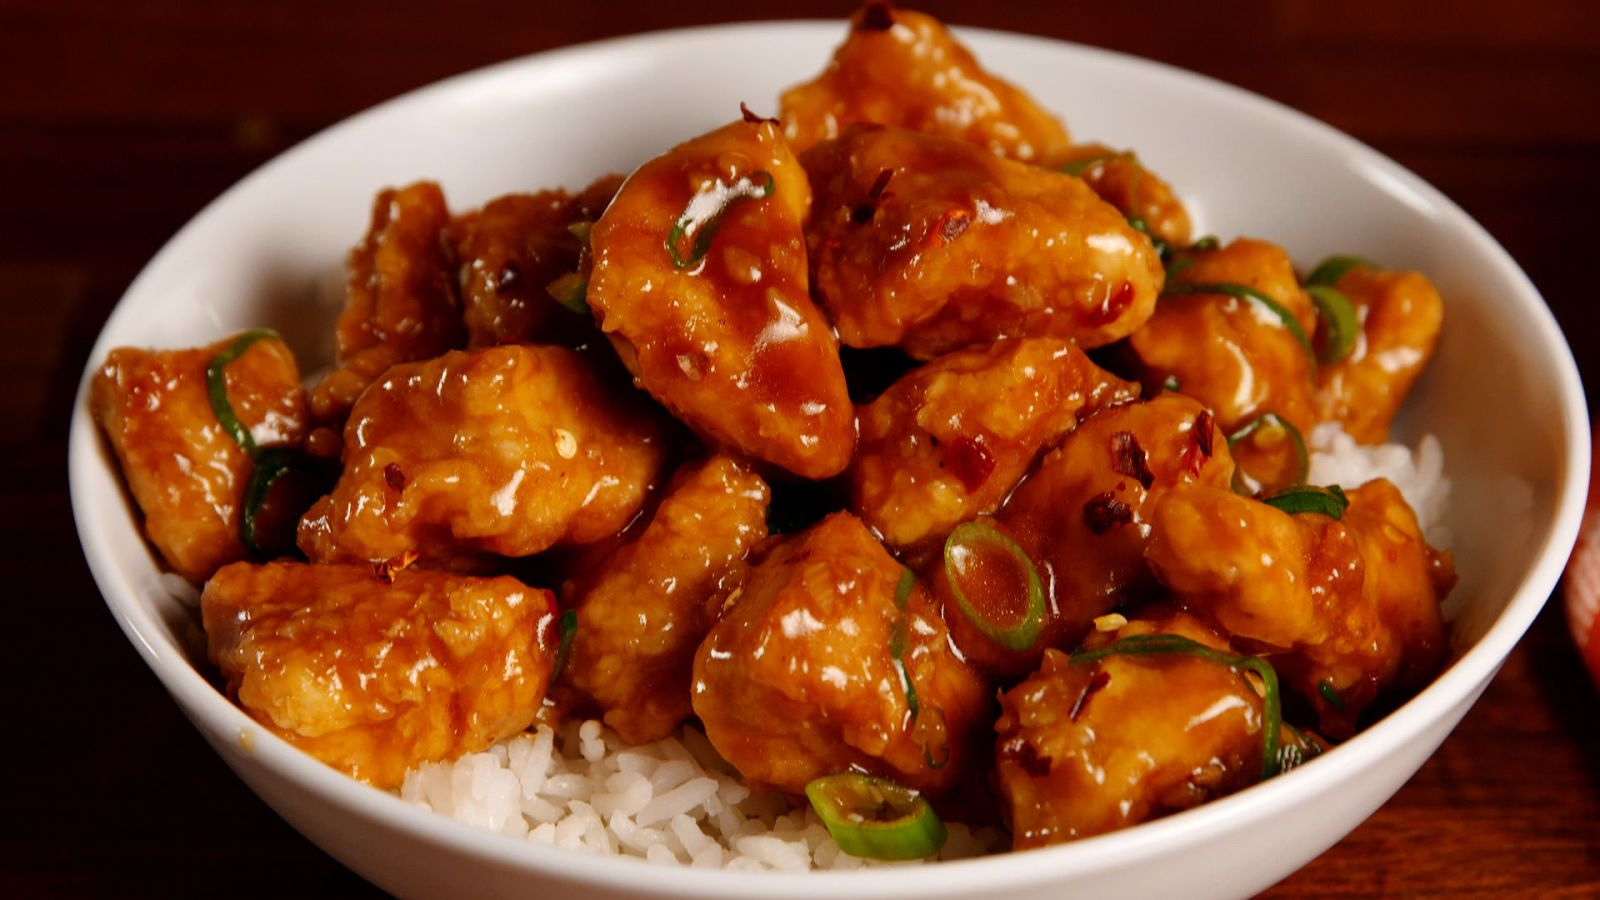 Homemade Sticky Orange Chicken Is Ready To Change Up Weeknight Dinner Recipe Orange Chicken Recipe Chicken Recipes Orange Chicken